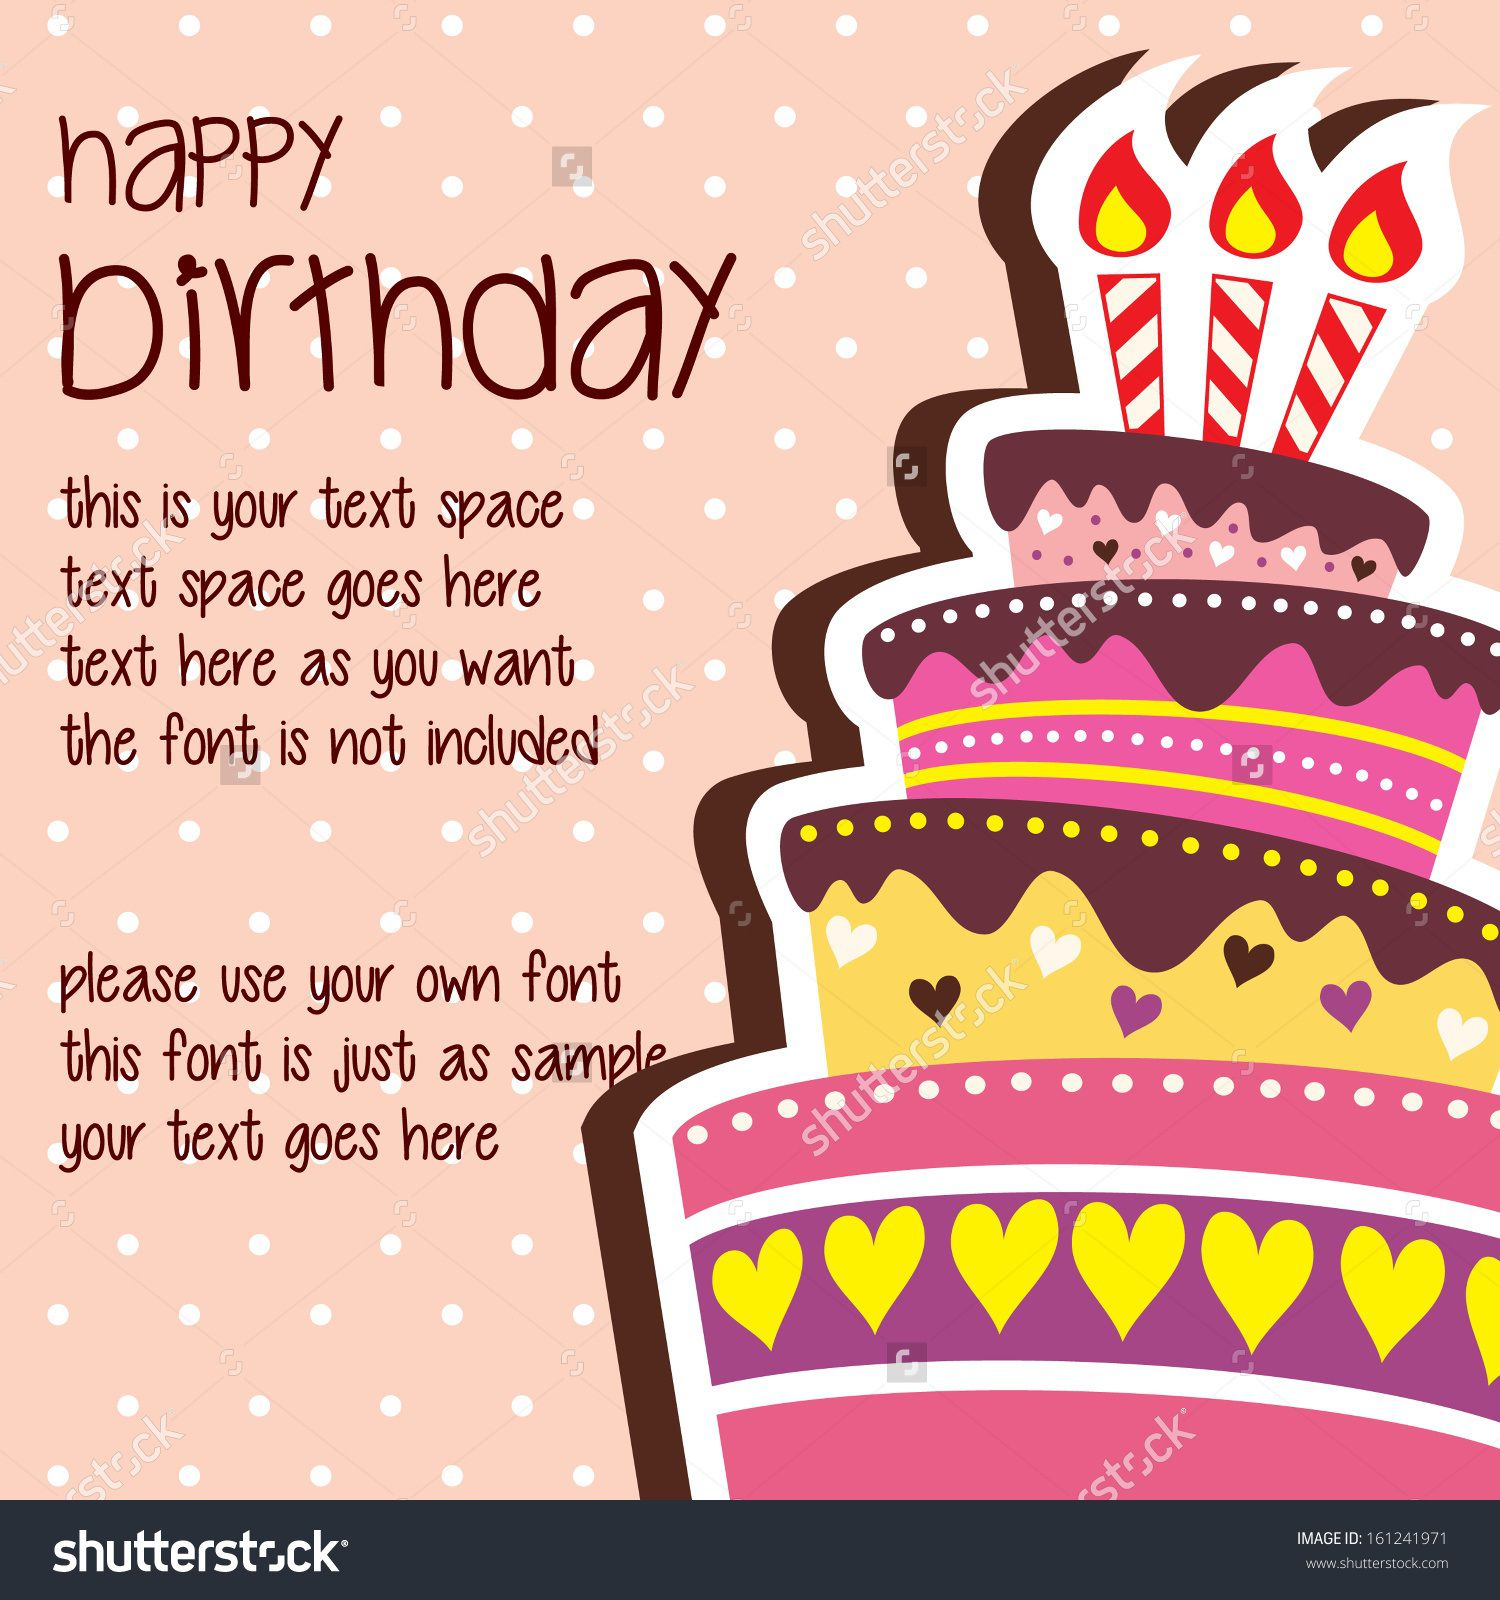 005 Outstanding Happy Birthday Card Template For Word Sample Full